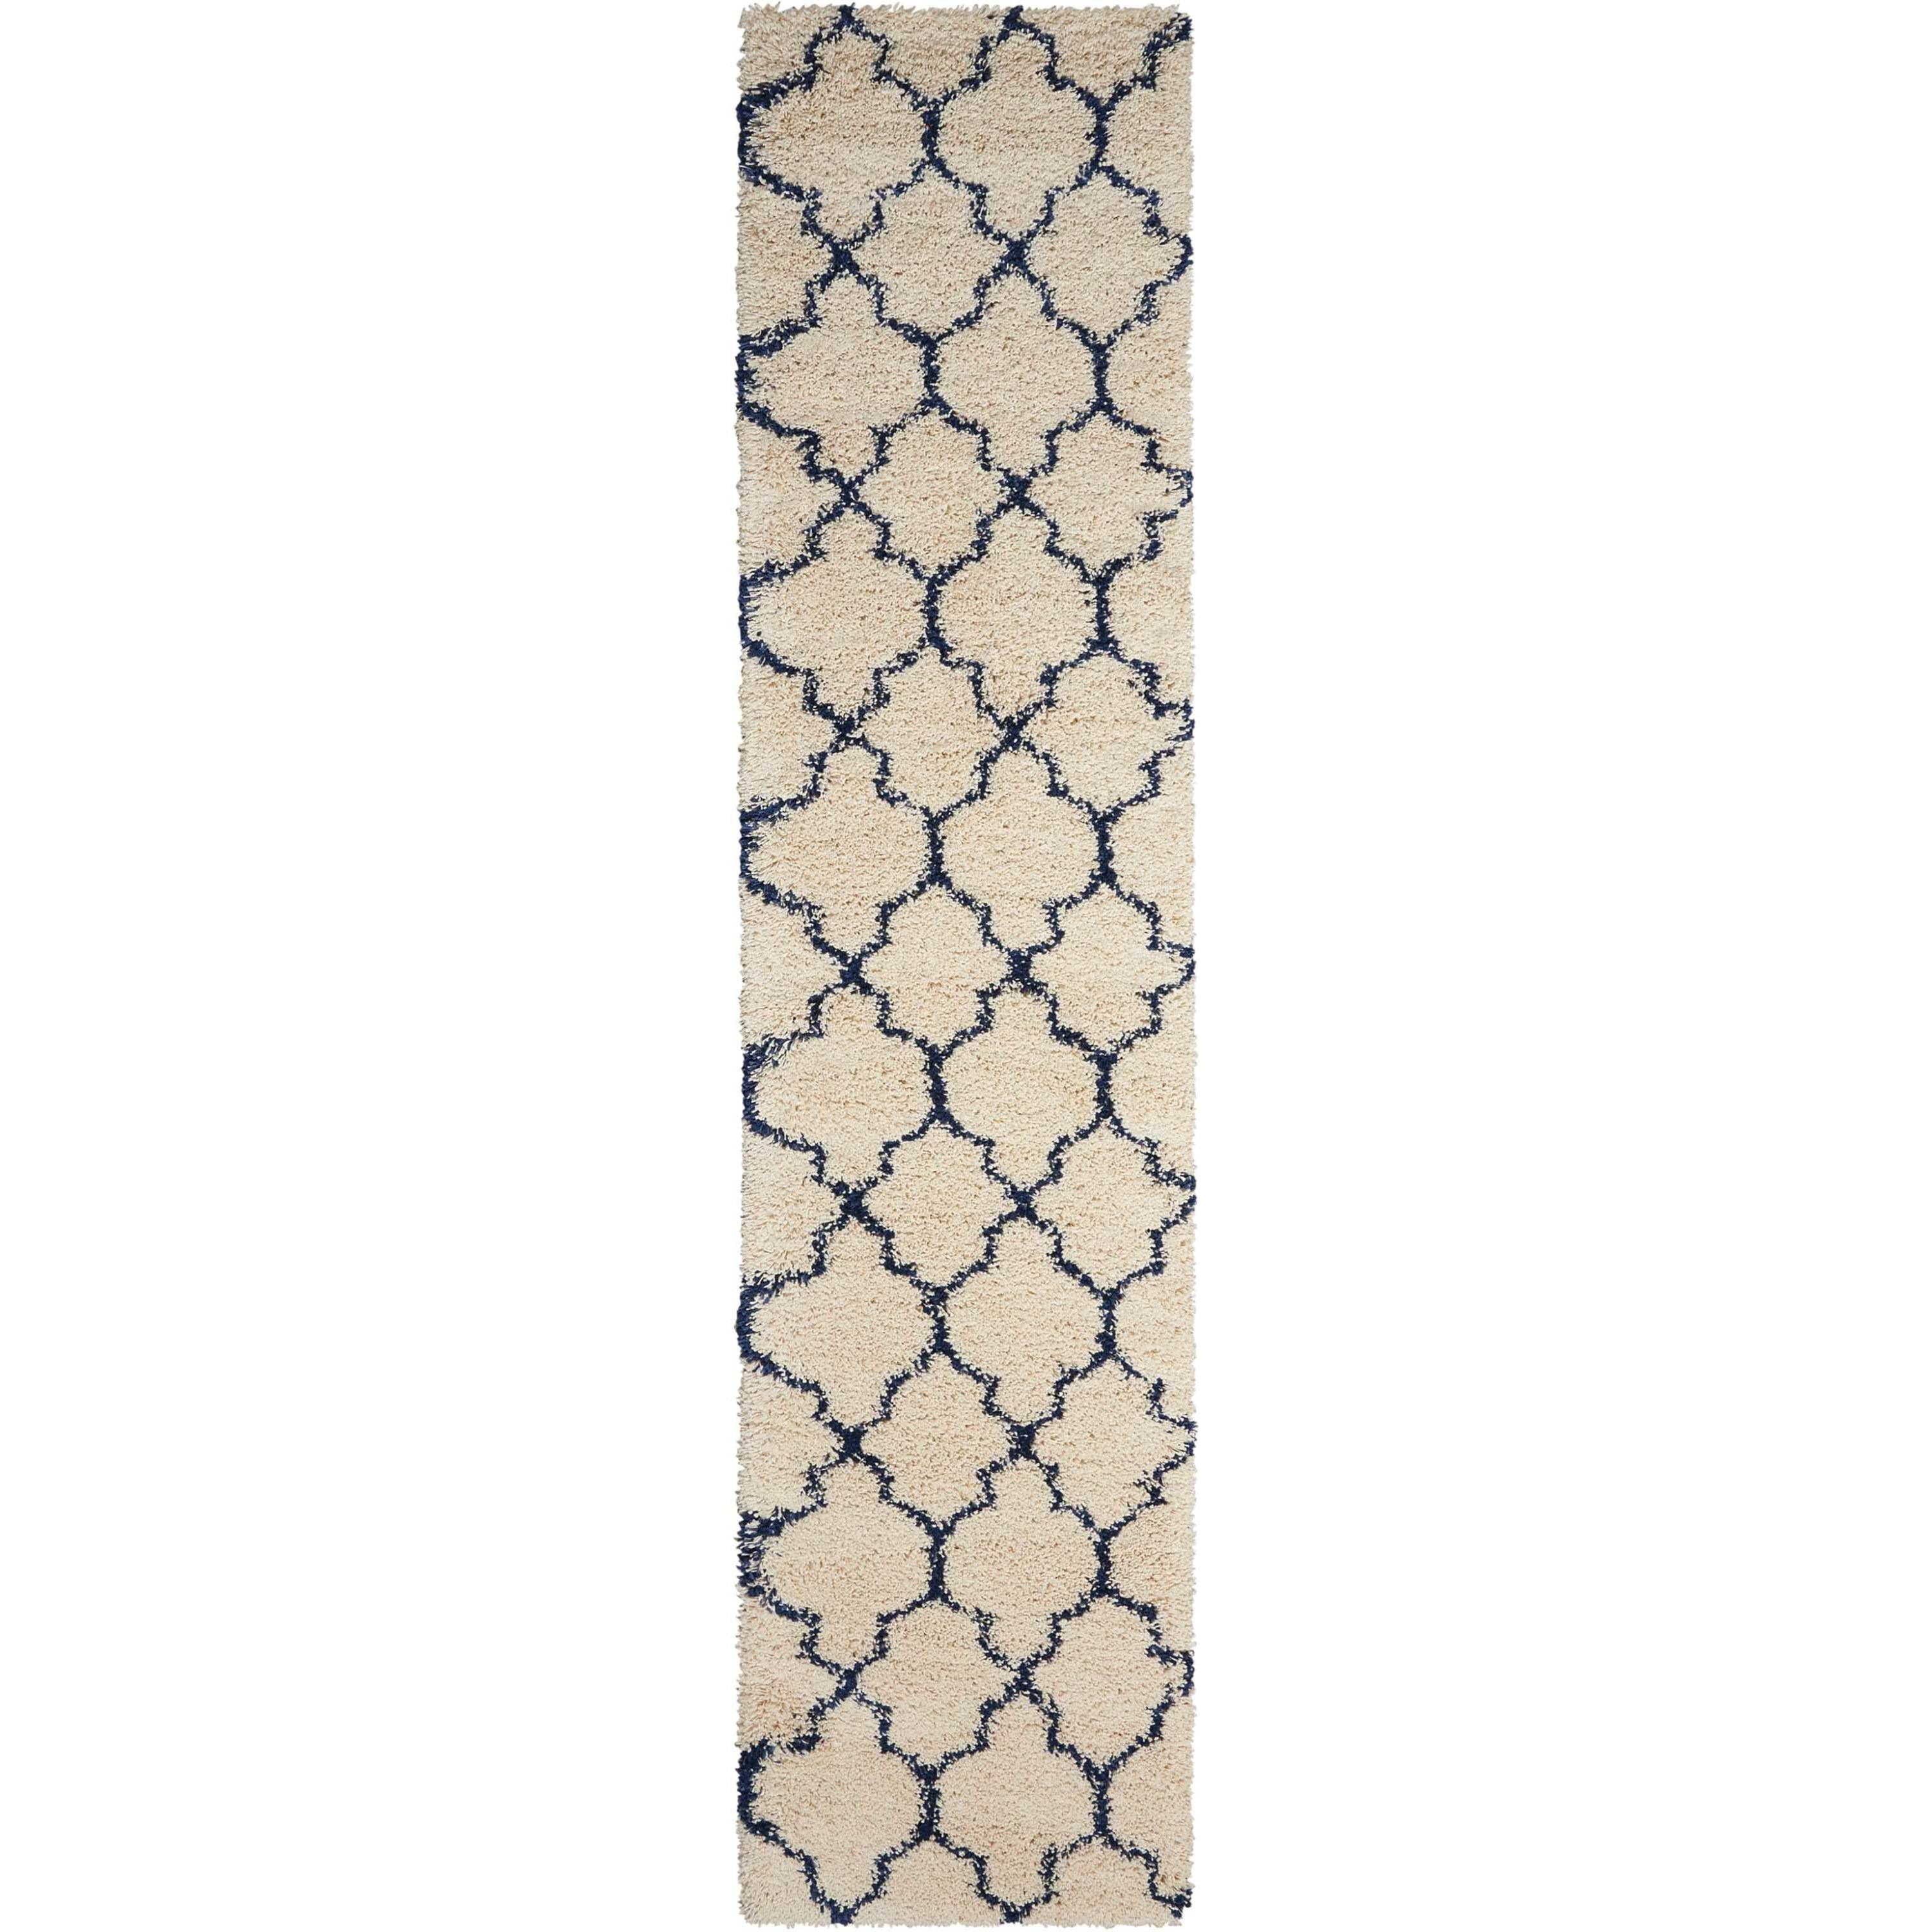 Amore Amore AMOR2 Blue and Ivory 10' Runner  Hallw by Nourison at Home Collections Furniture